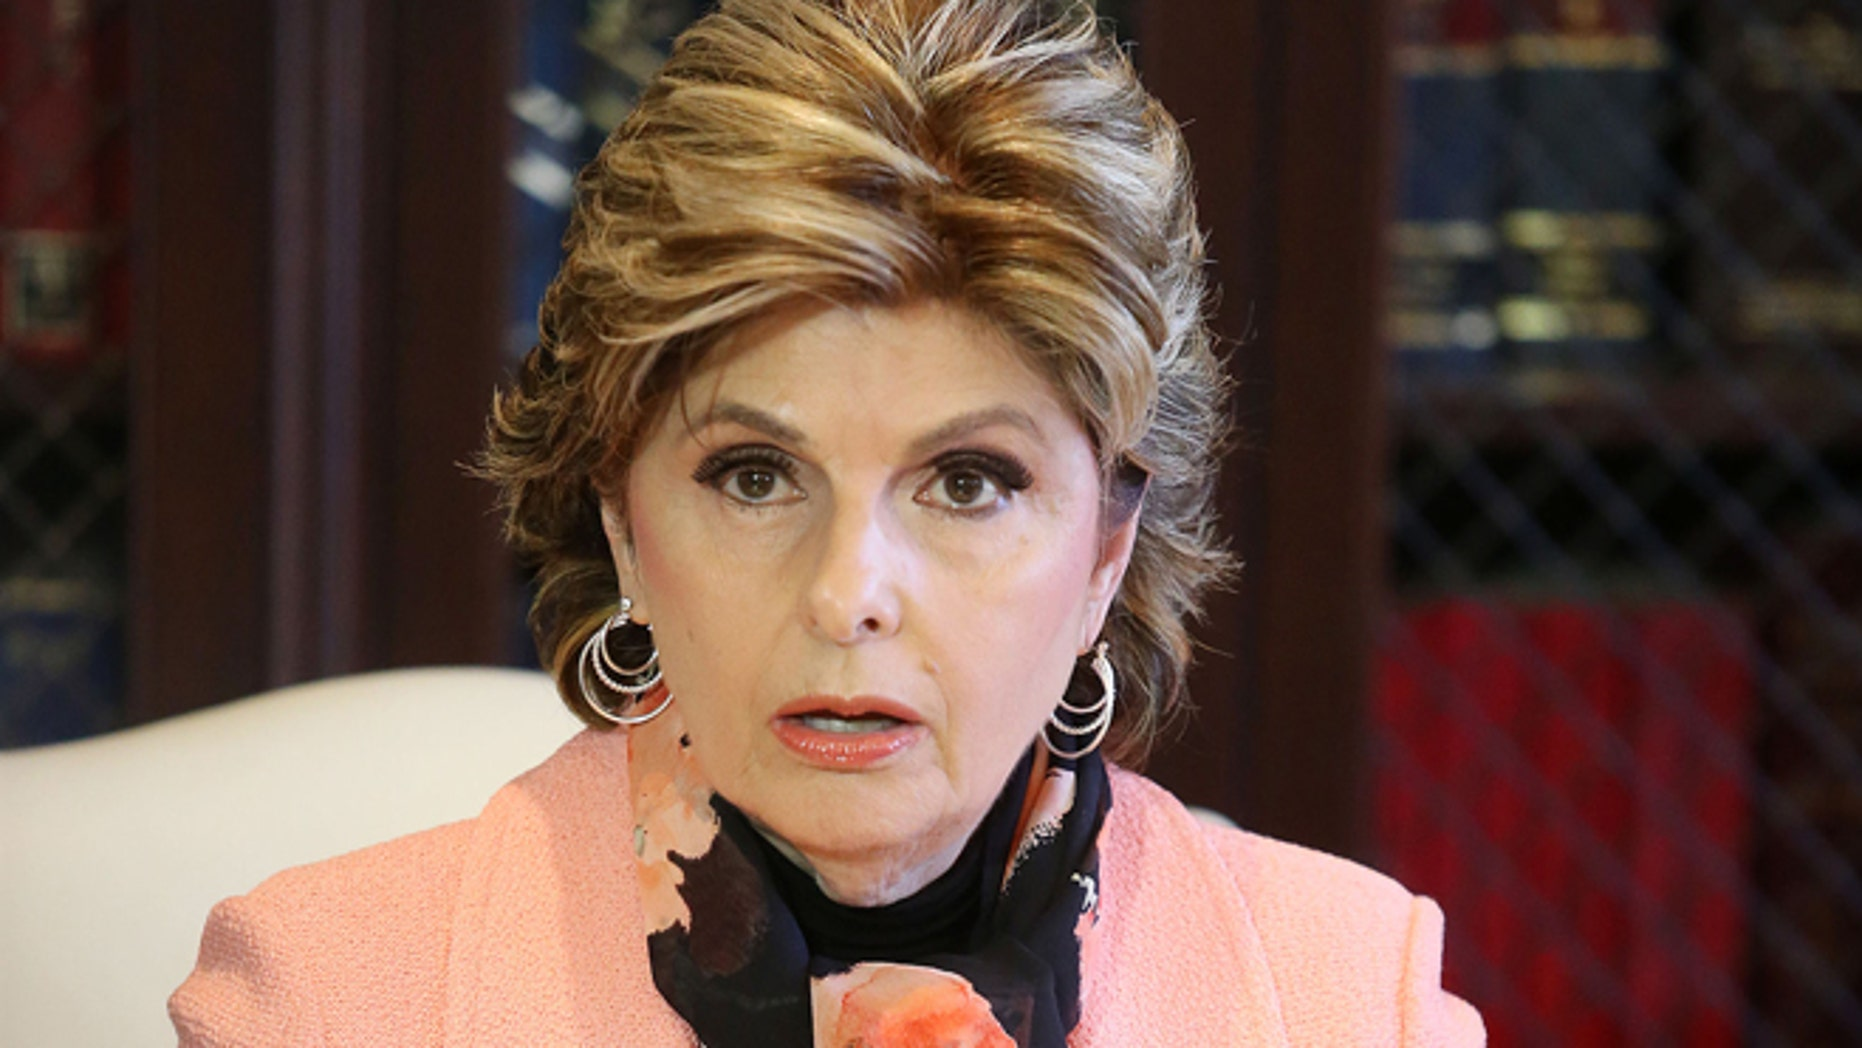 """After O.J. Simpson was granted parole in Nevada, """"I immediately felt that the law in Nevada should be changed,"""" attorney Gloria Allred said last week. Allred is pictured in Los Angeles, Aug. 22, 2013."""